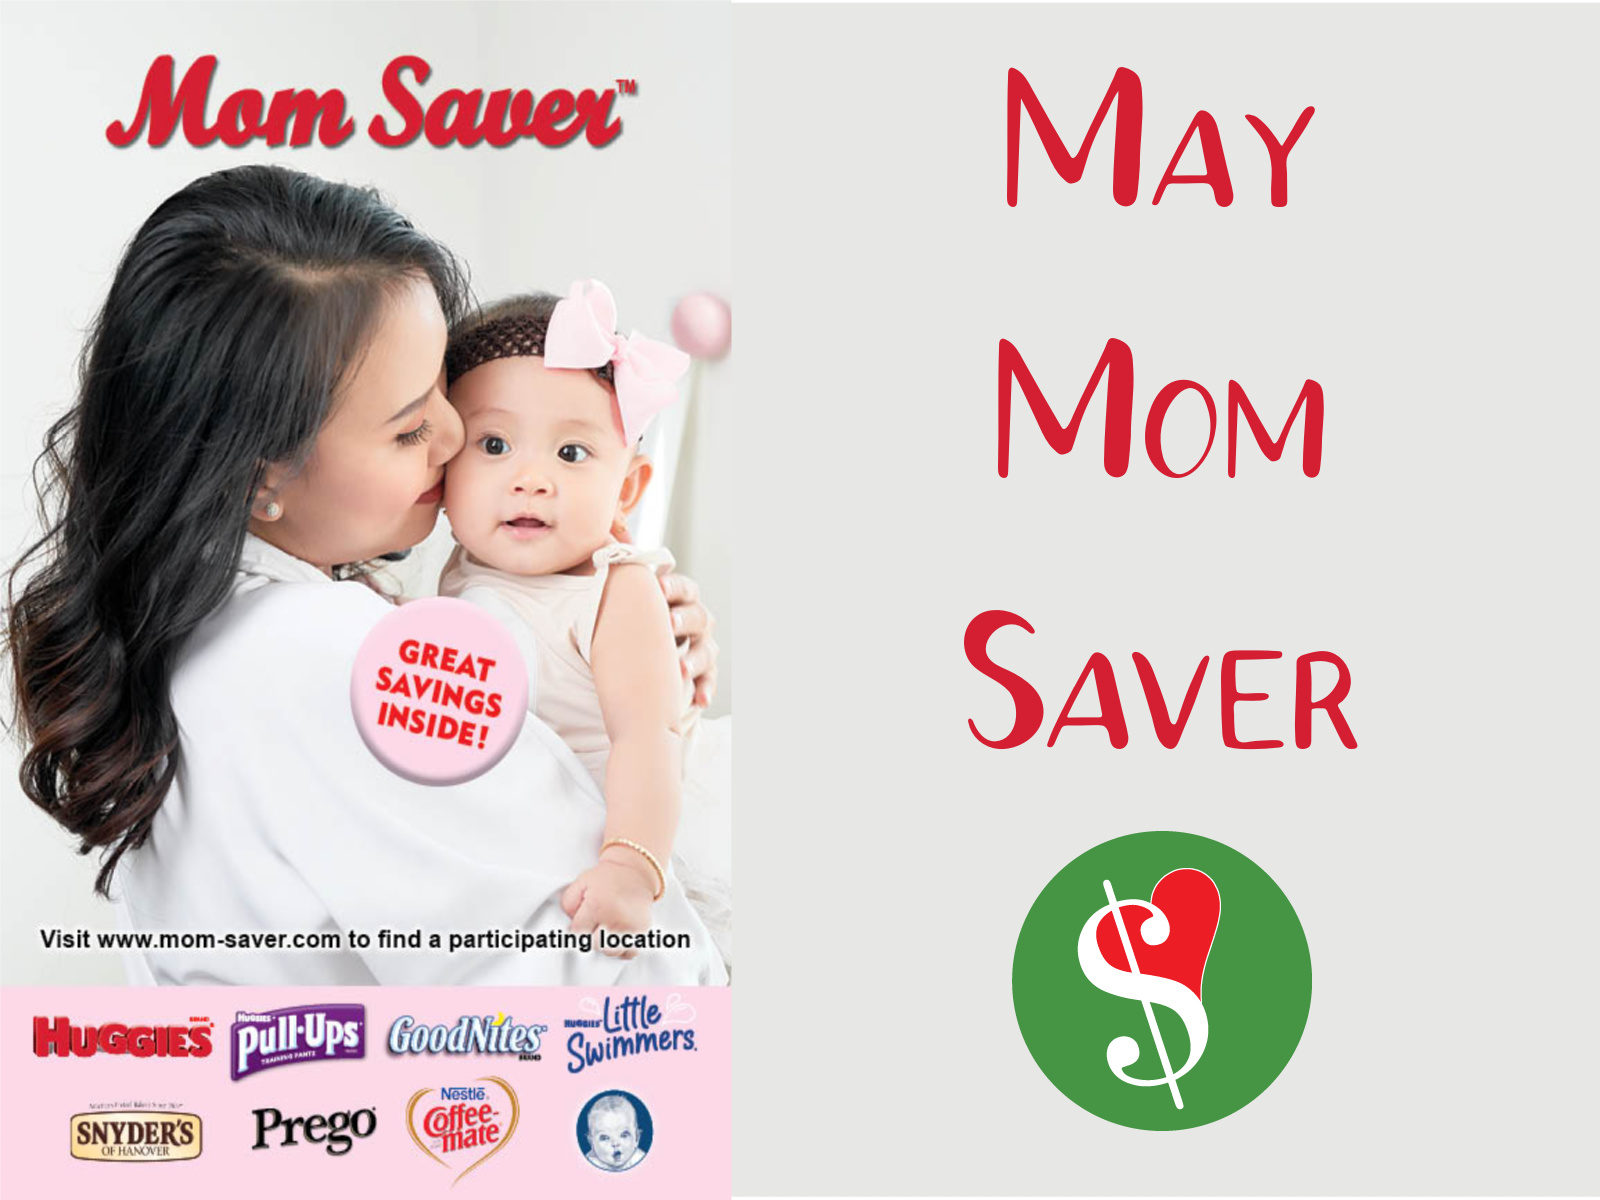 May MOM Saver Booklet + Find Your Local Event Day & Time on I Heart Publix